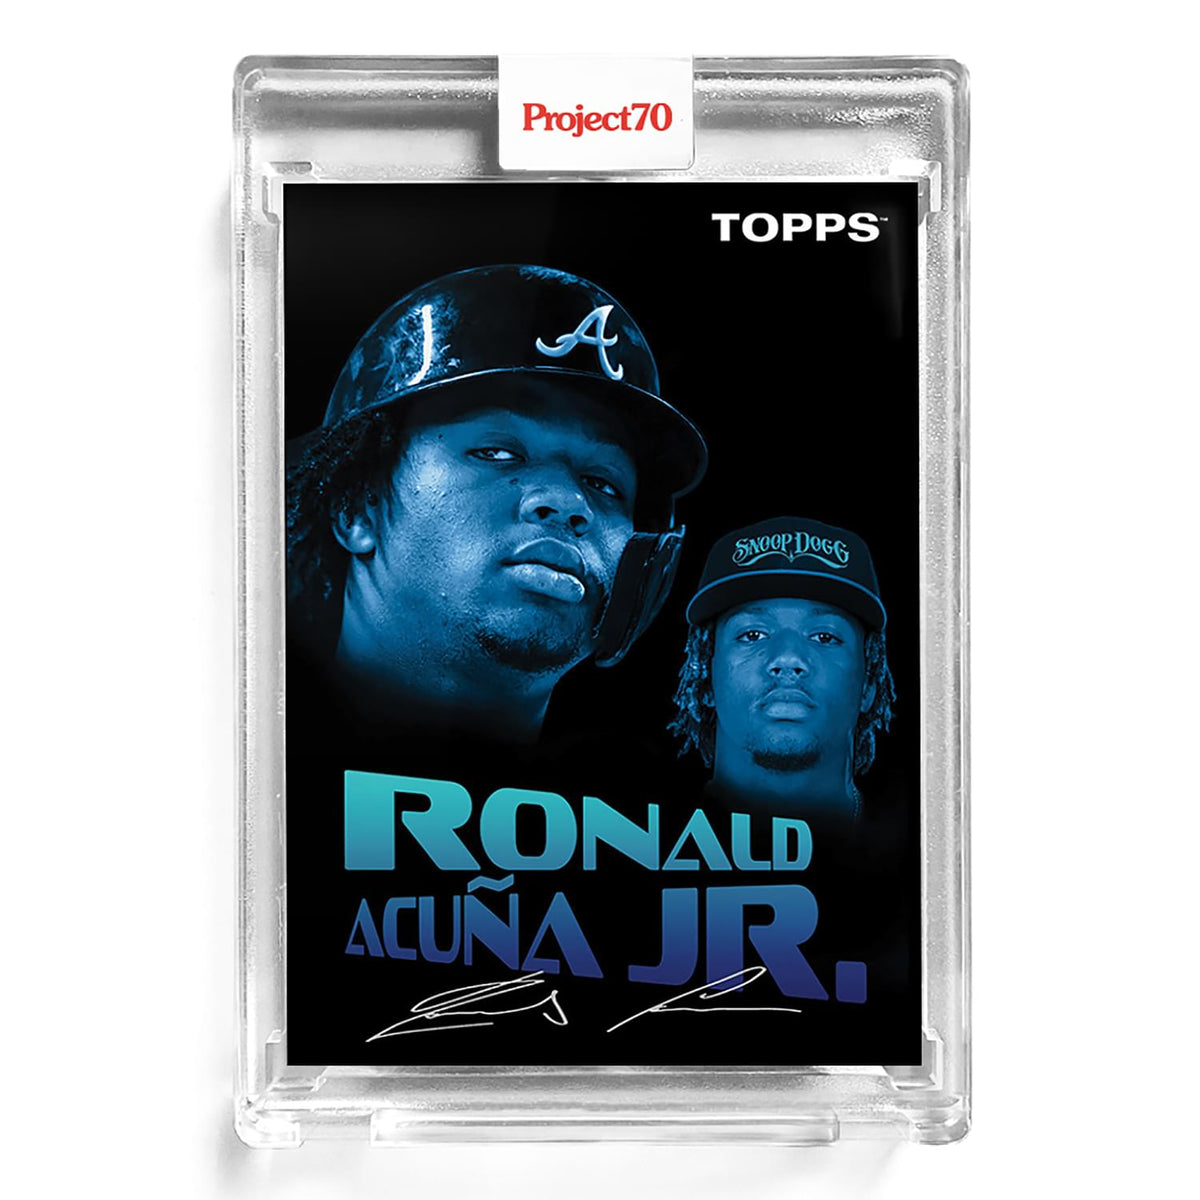 Topps Project70 Card 4 - 1954 Ronald Acuna Jr. by Snoop Dogg